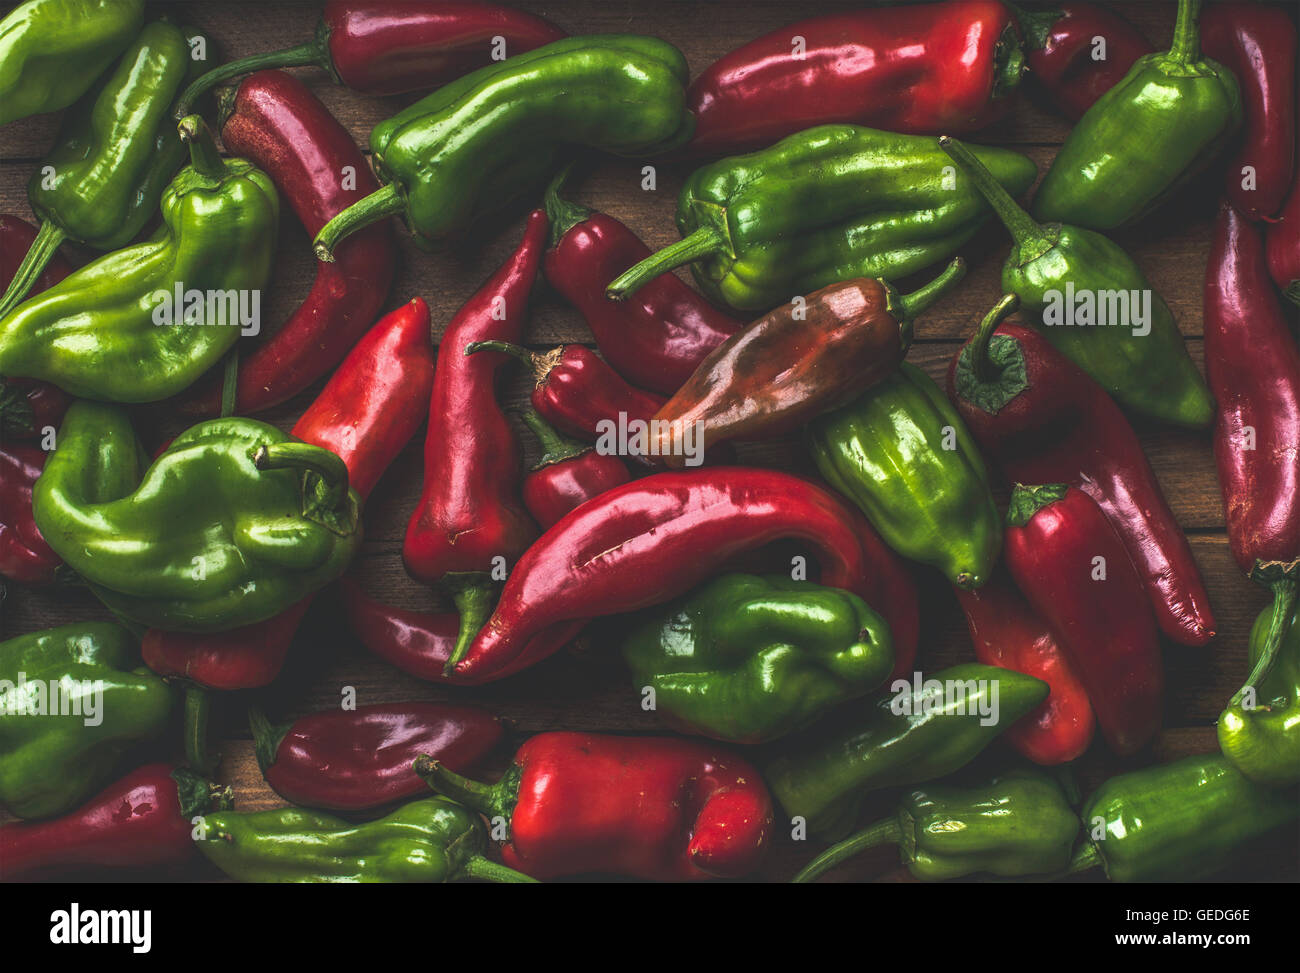 Background of colorful red and green bell peppers over wooden backdrop - Stock Image